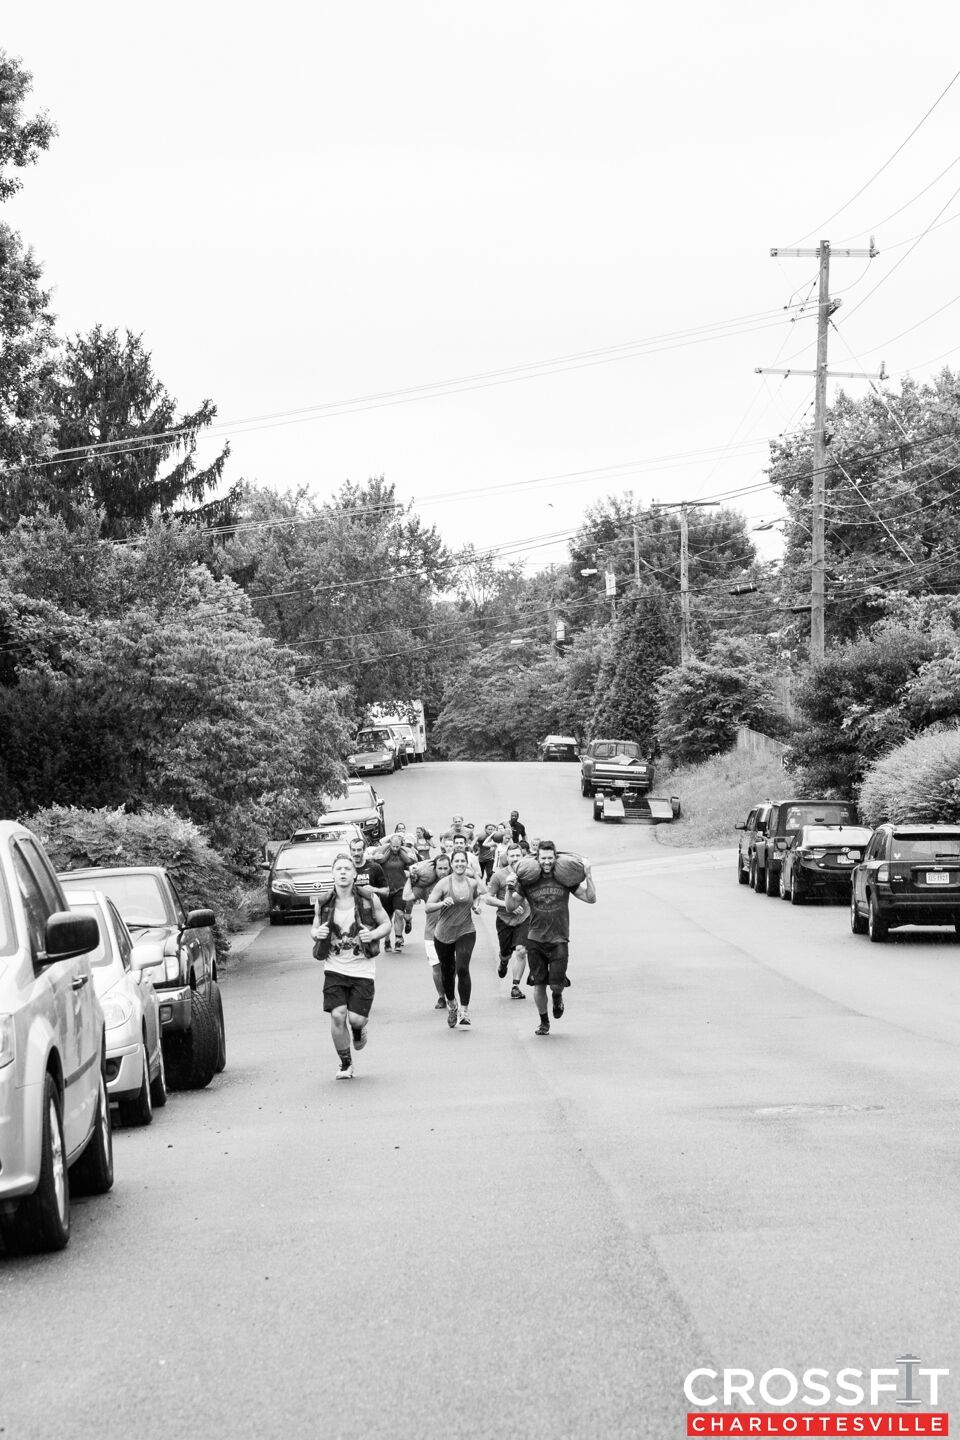 crossfit-charlottesville_0400_preview.jpeg